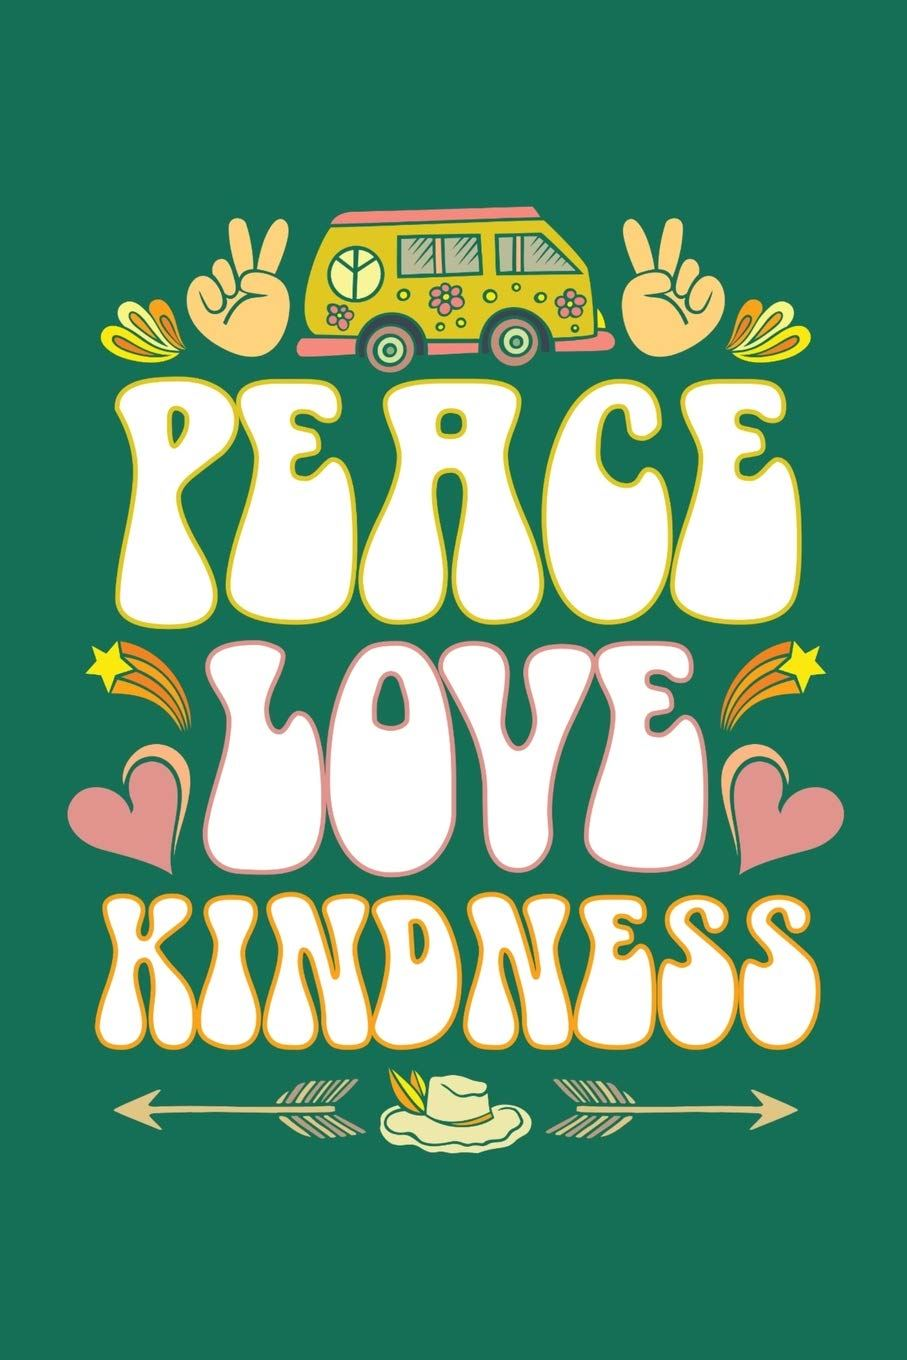 Great Kindness Challenge Tuesday  2/4/20